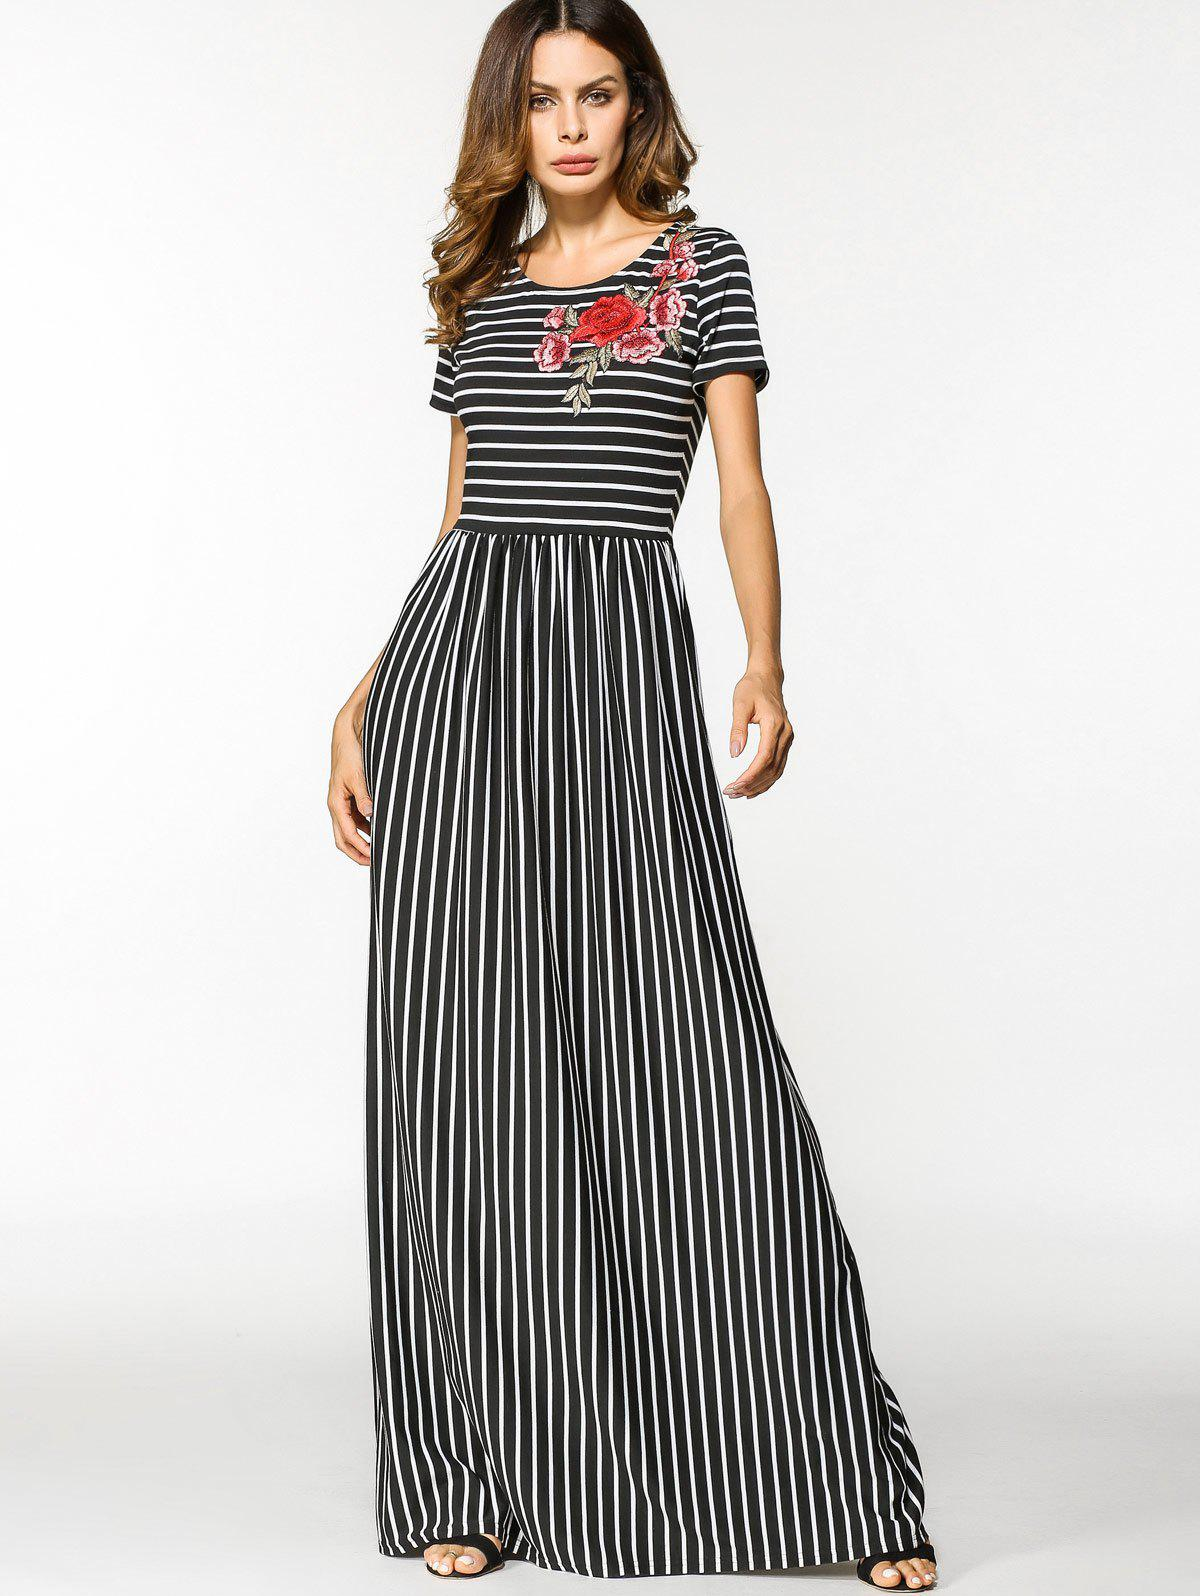 Buy Floral Embroidered Patched Stripes Maxi Dress